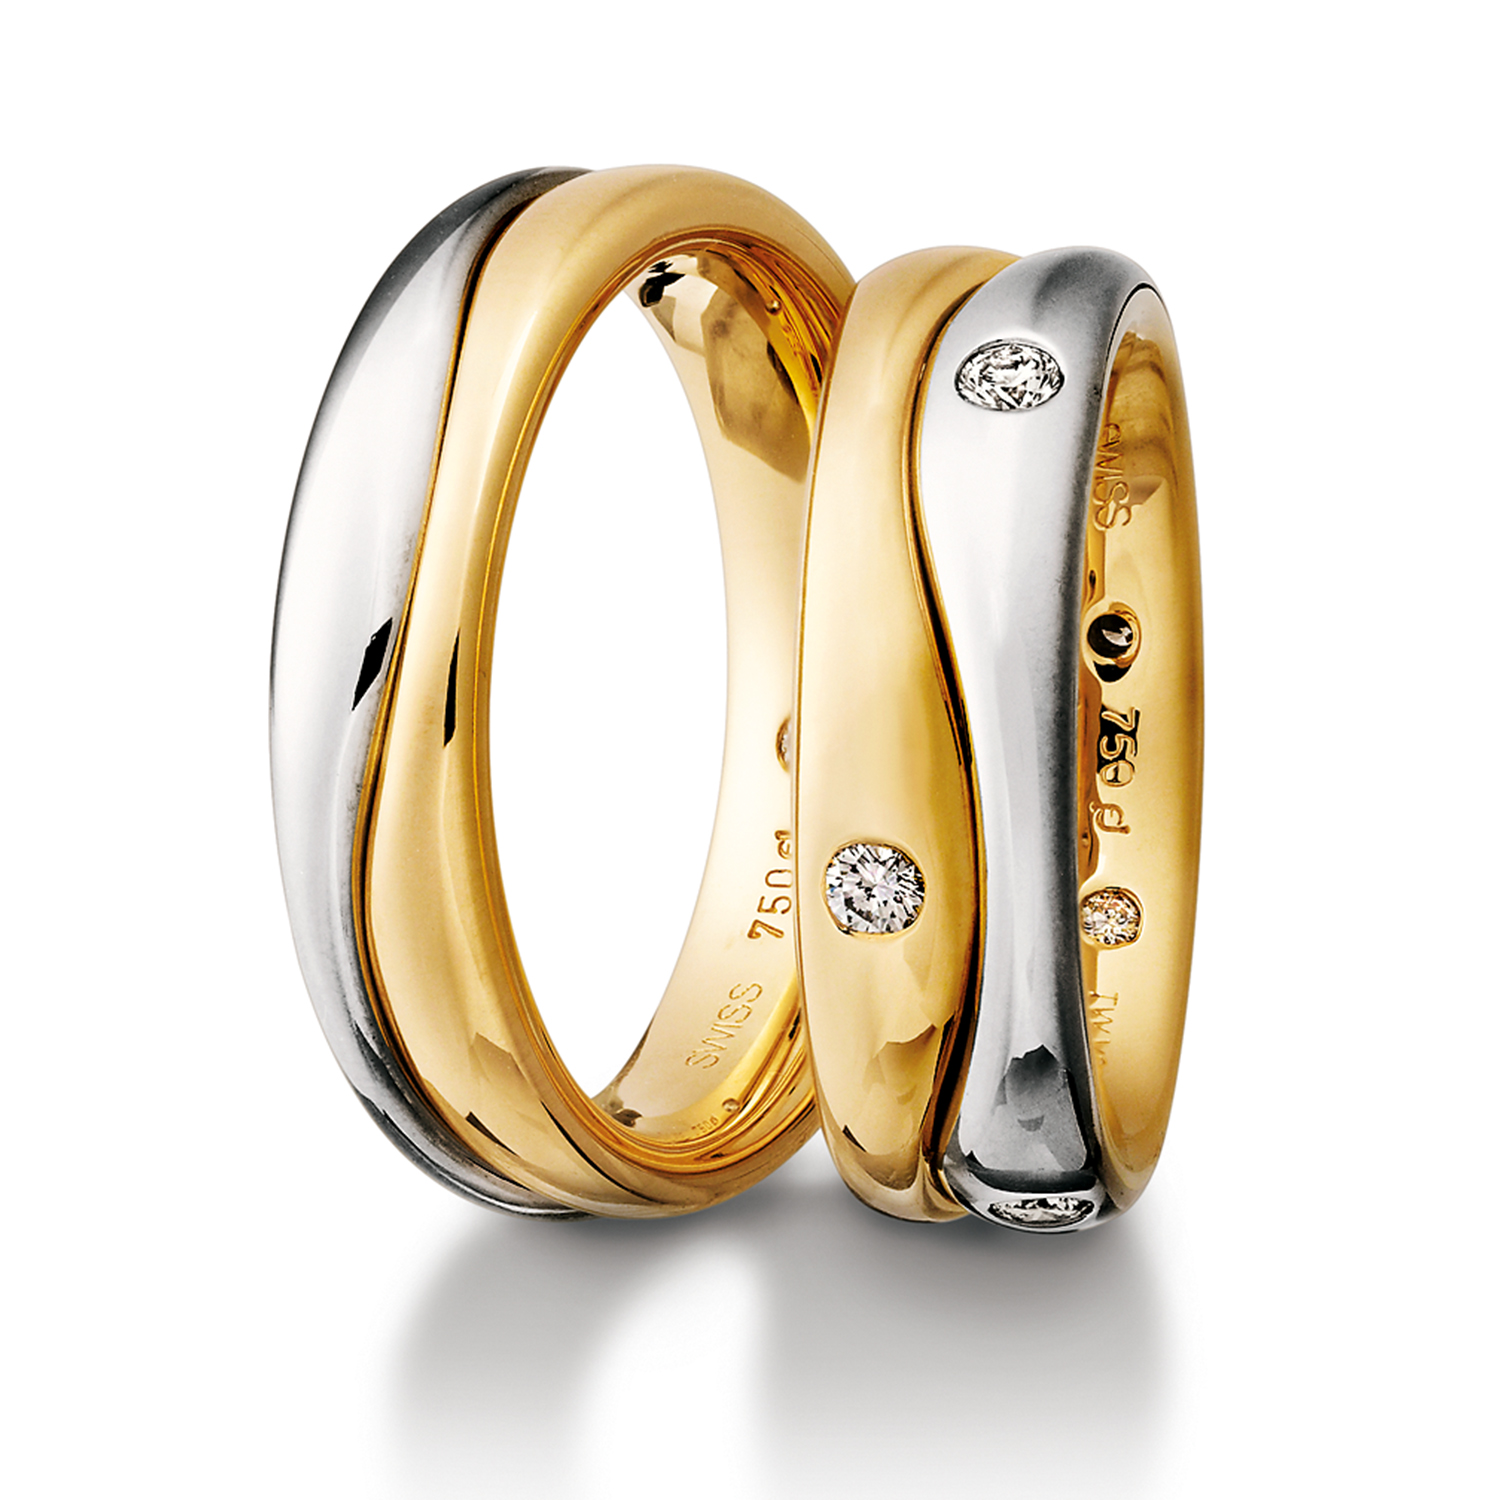 Rings in gold, platinum and palladium with diamonds Furrer Jacot